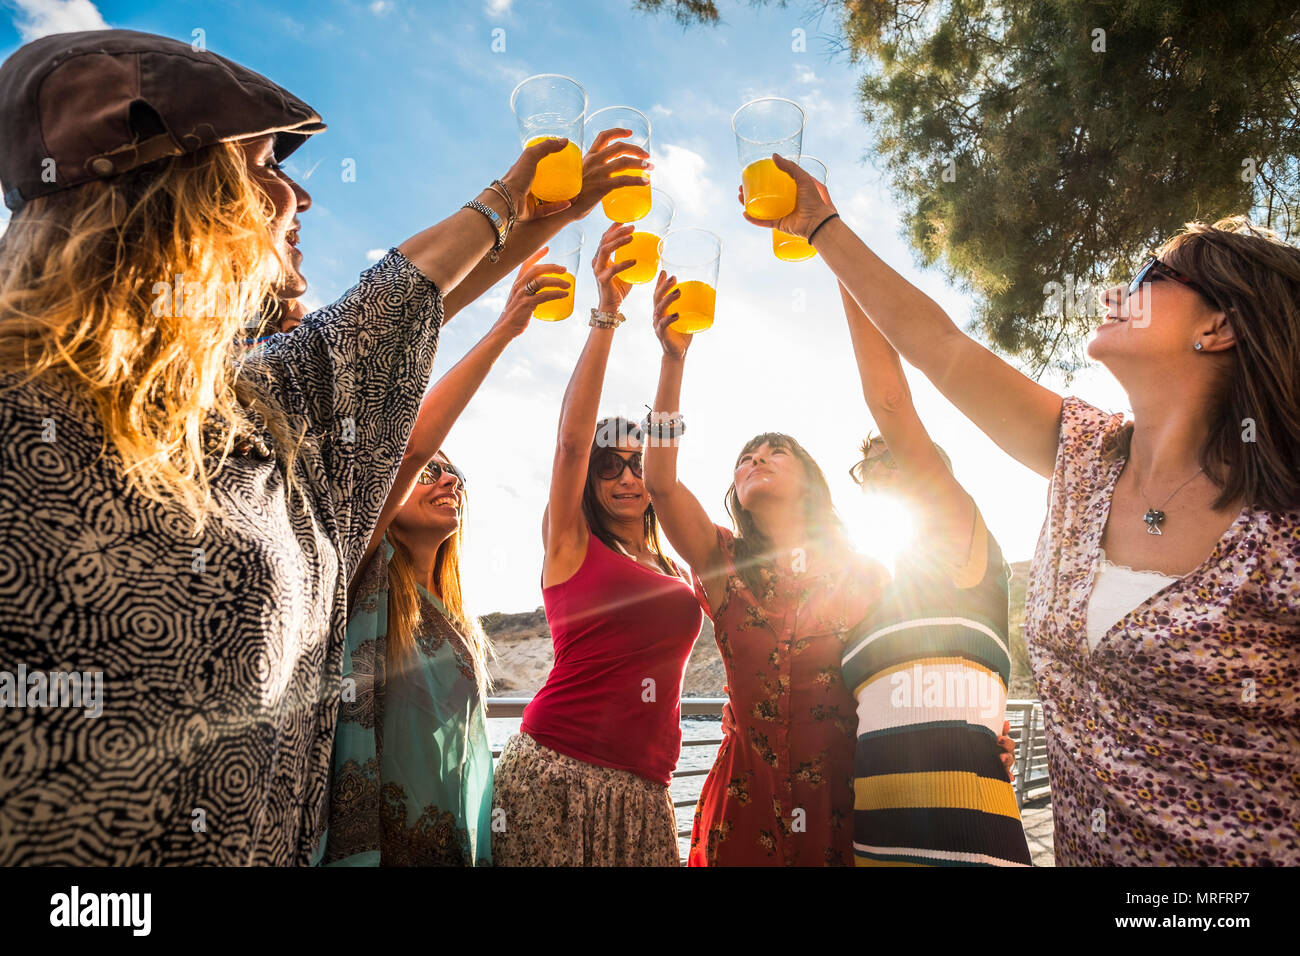 celebrating friendship or success team works outdoor with colored juice and 7 beautiful females friends all together with orange cocktail and the sunl - Stock Image